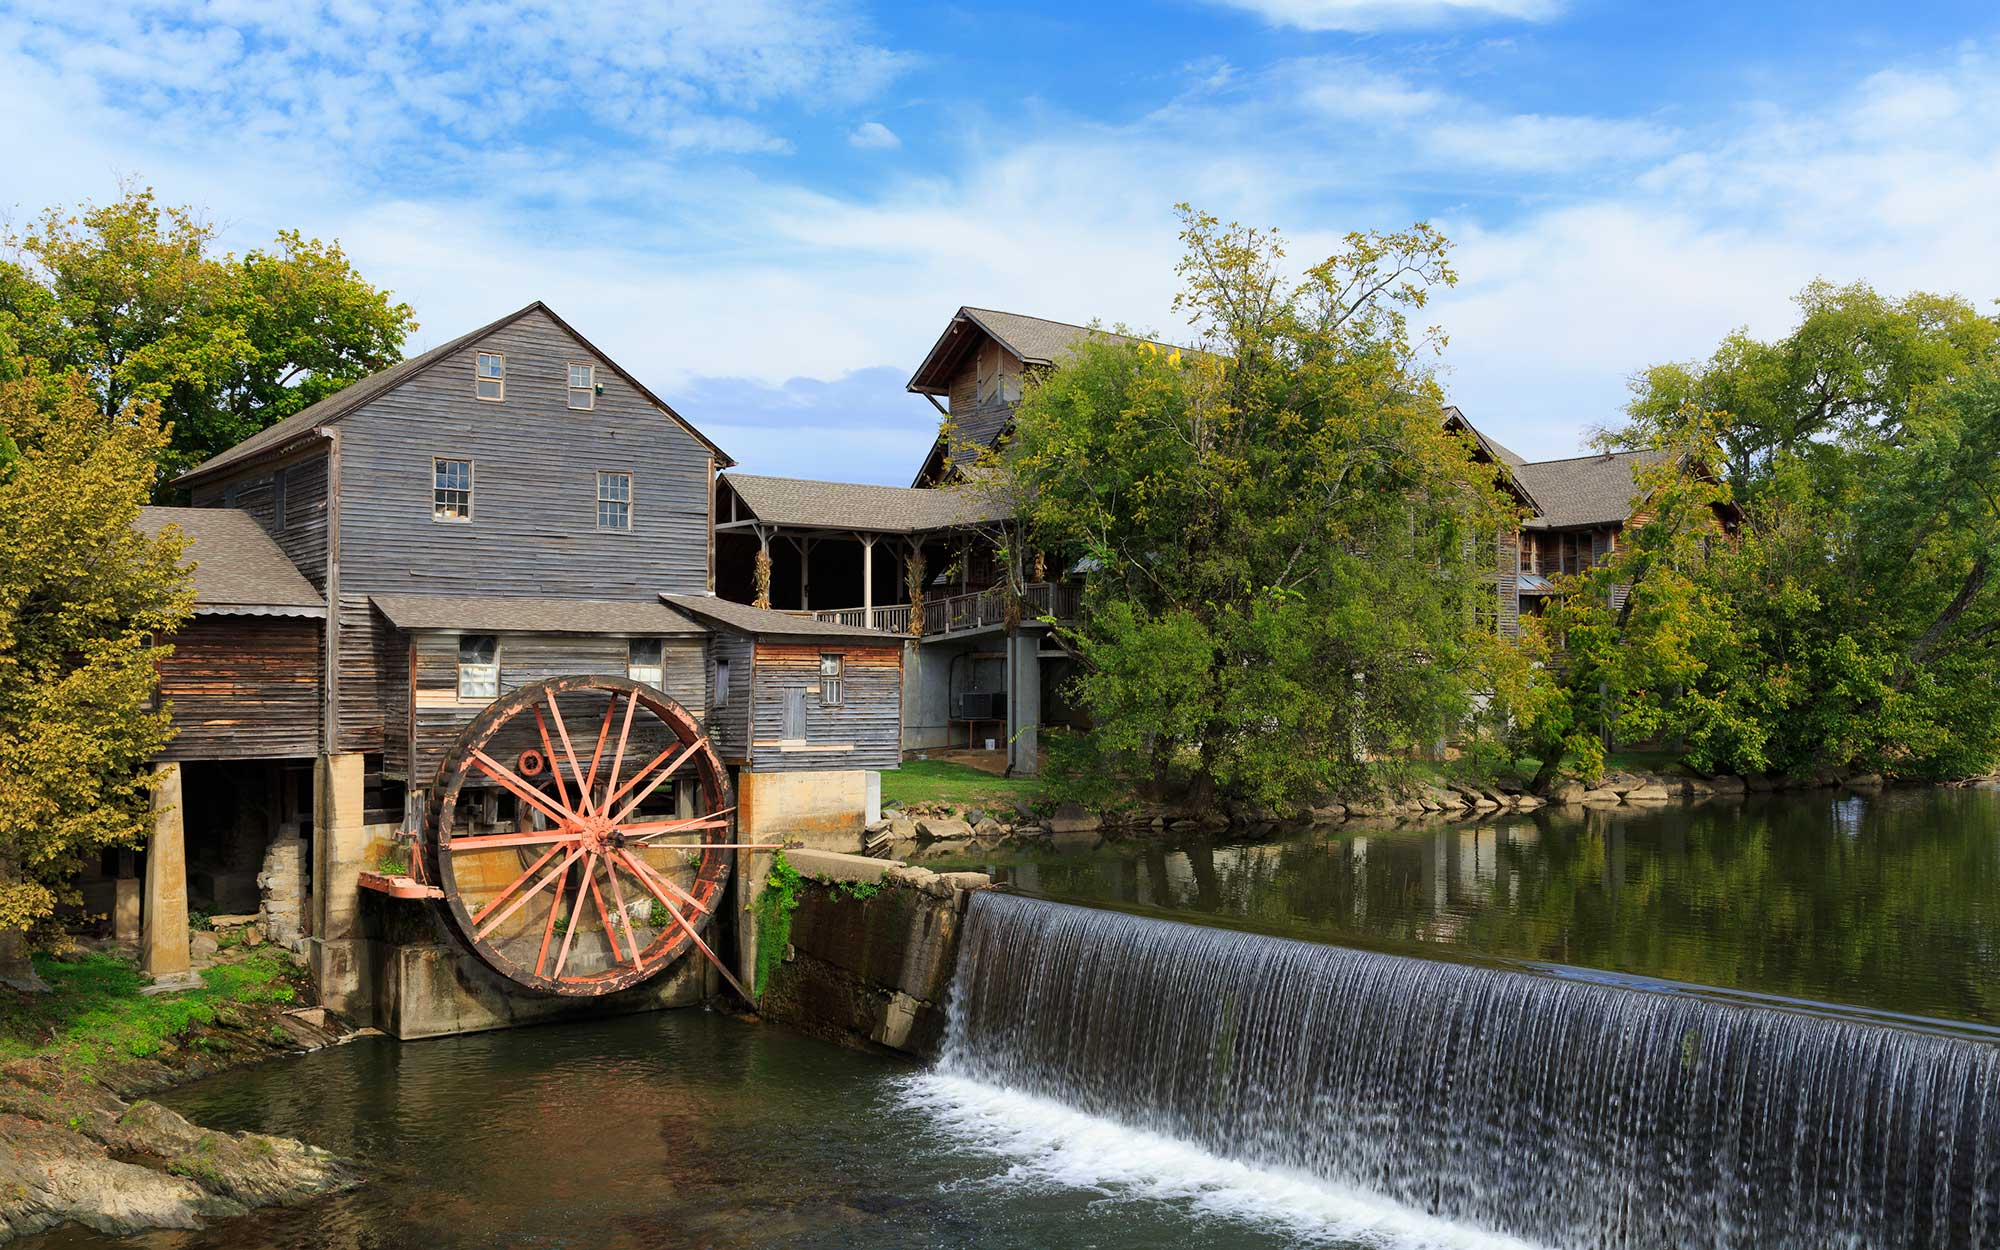 No. 14 Pigeon Forge, TN